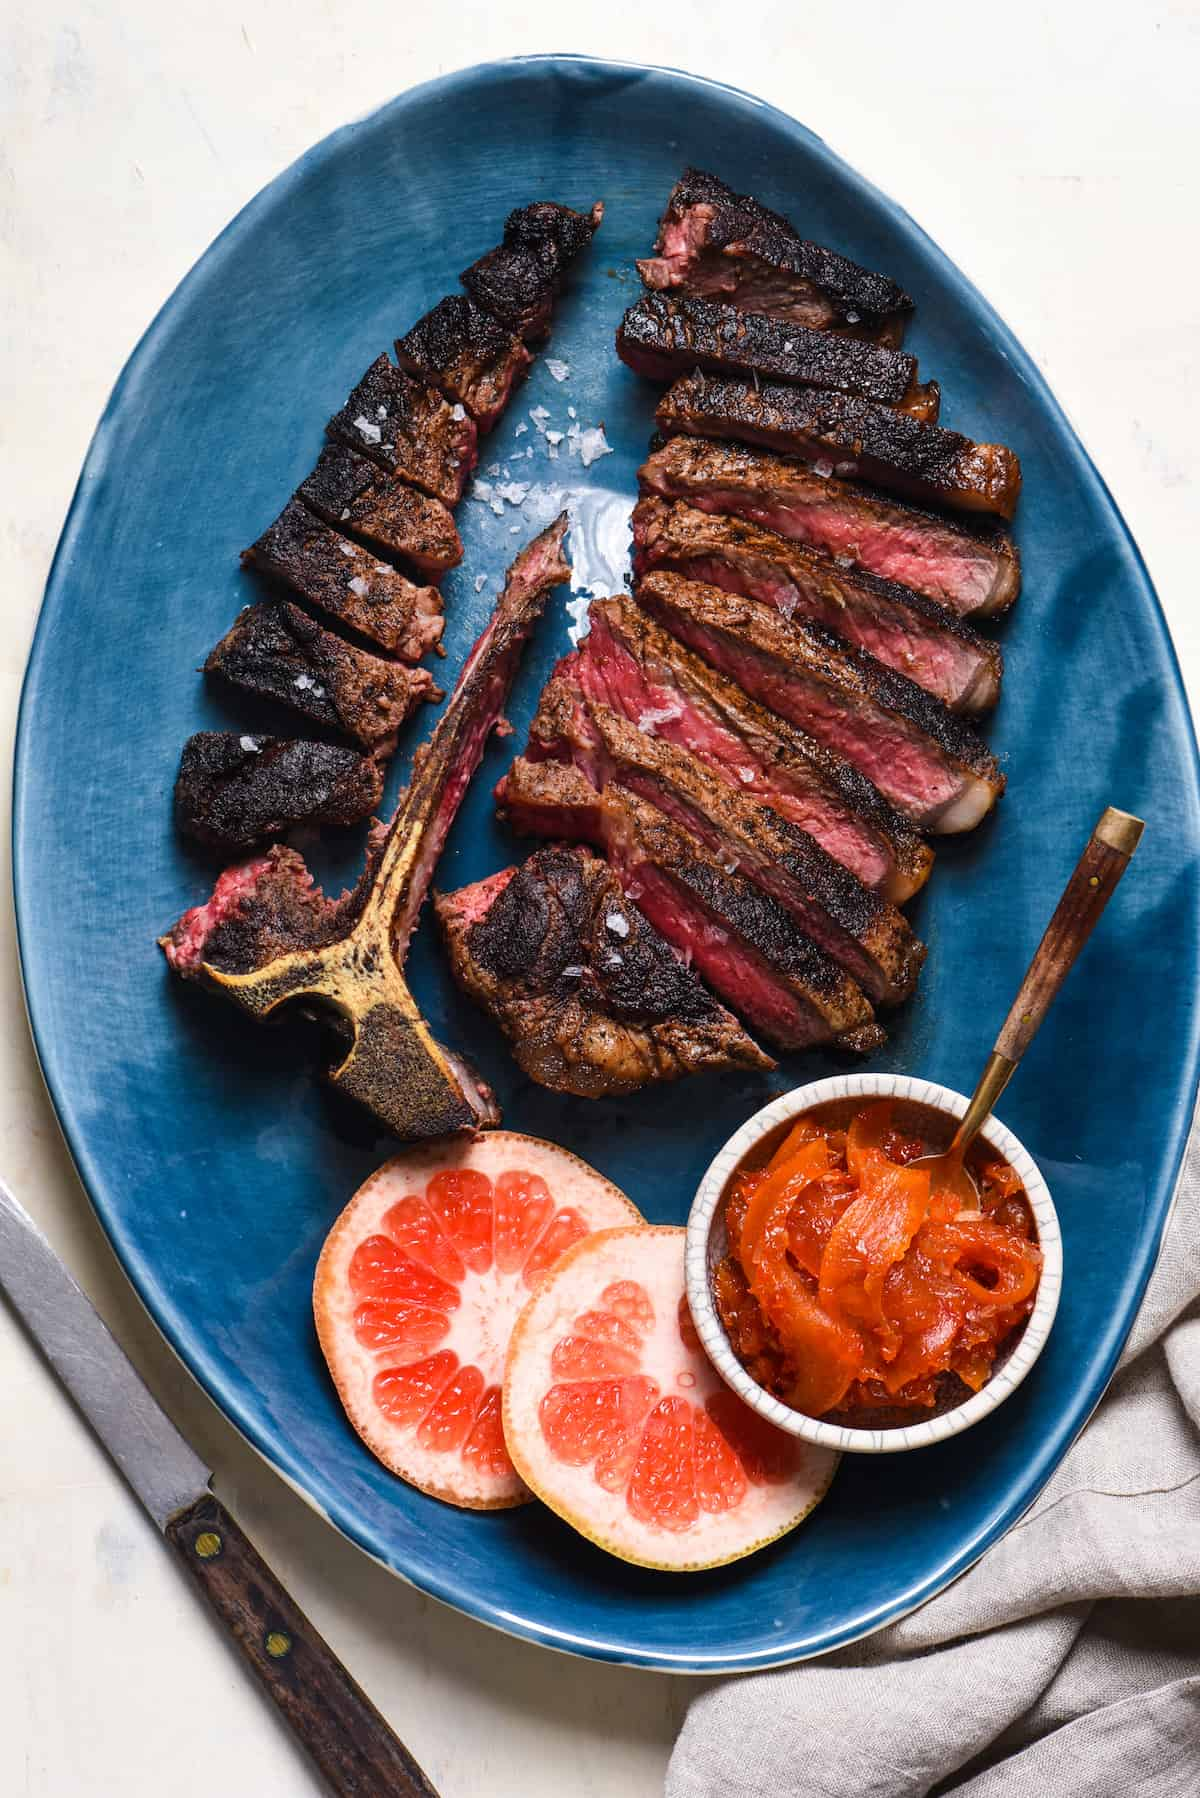 Spice-Rubbed Steak with Grapefruit Chutney + 11 Grapefruit Recipes to Brighten Your Winter - Bring some happy flavor to a cold day with an appetizer, cocktail, breakfast, salad, lunch or dinner celebrating juicy, sweet grapefruit! | foxeslovelemons.com